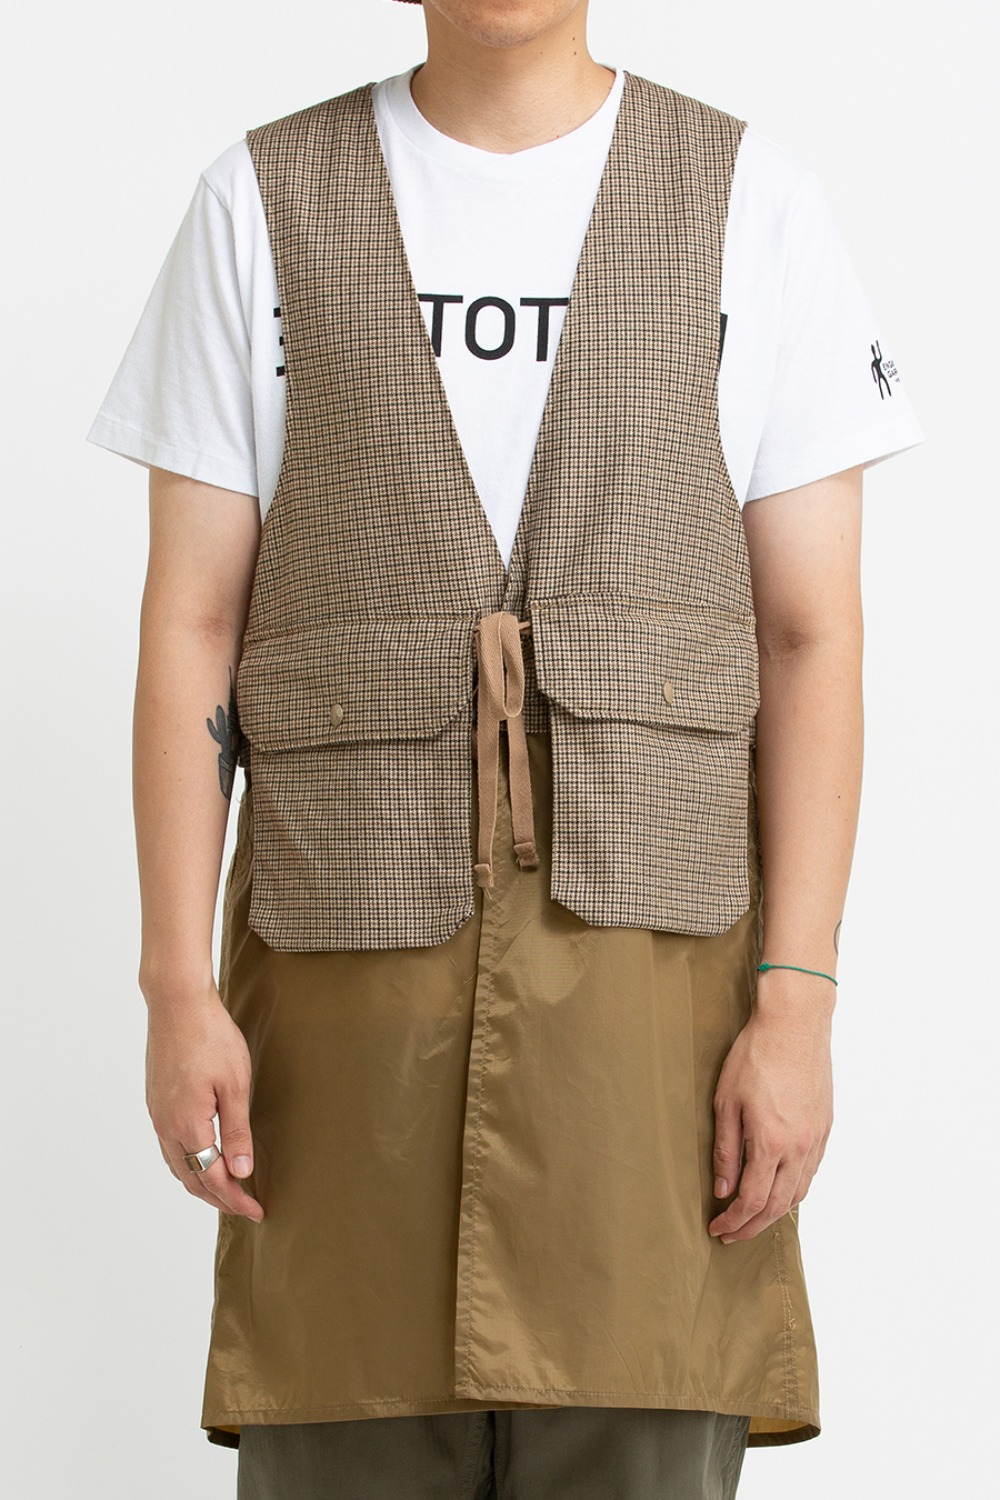 LONG FOWL VEST BROWN WOOL POLY GUNCLUB